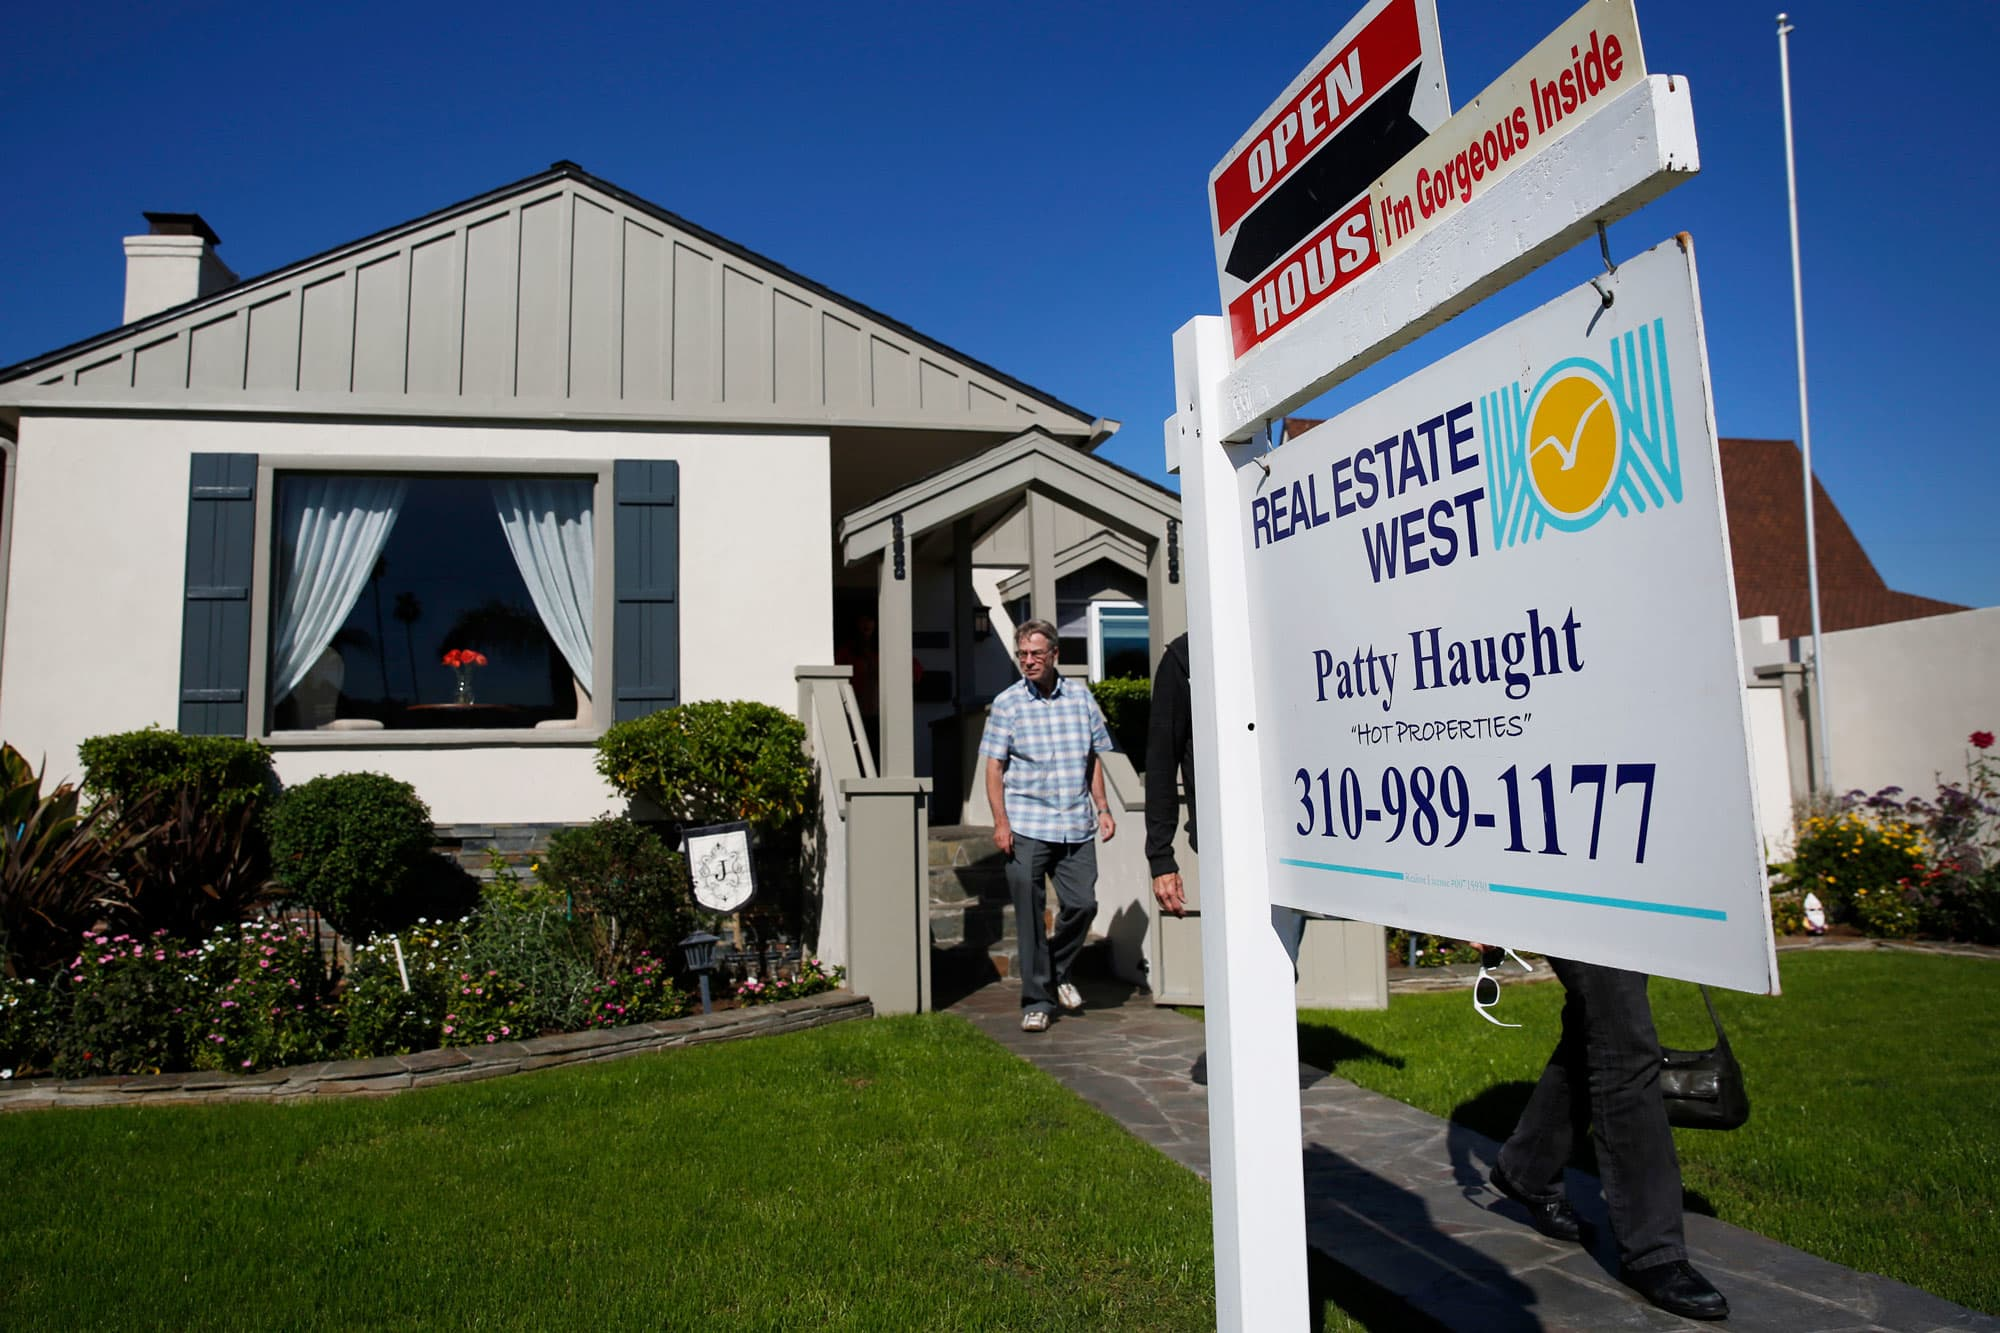 Homebuyer mortgage demand spikes 33% as rates set another record low